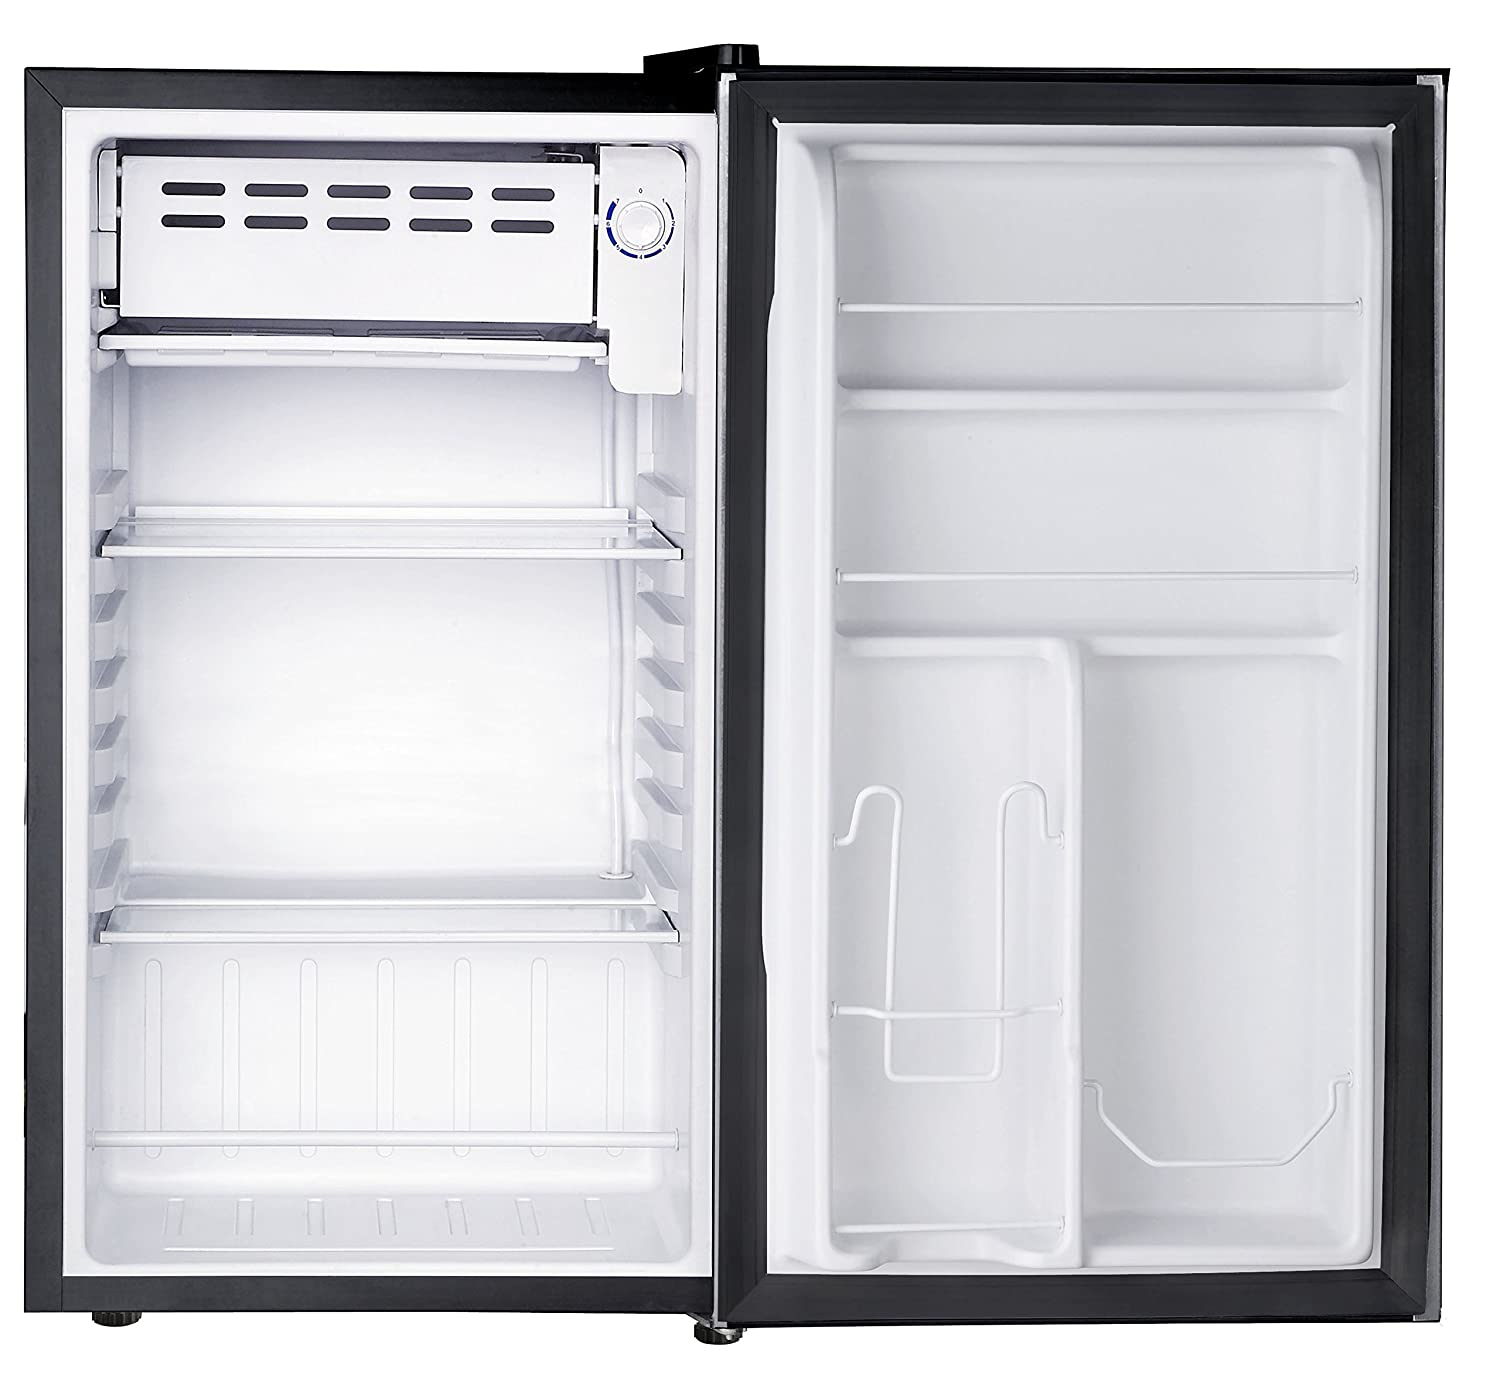 refrigerator 7 5 cu ft. amazon.com: rca rfr321-fr320/8 igloo mini refrigerator, 3.2 cu ft fridge, stainless steel: kitchen \u0026 dining refrigerator 7 5 g